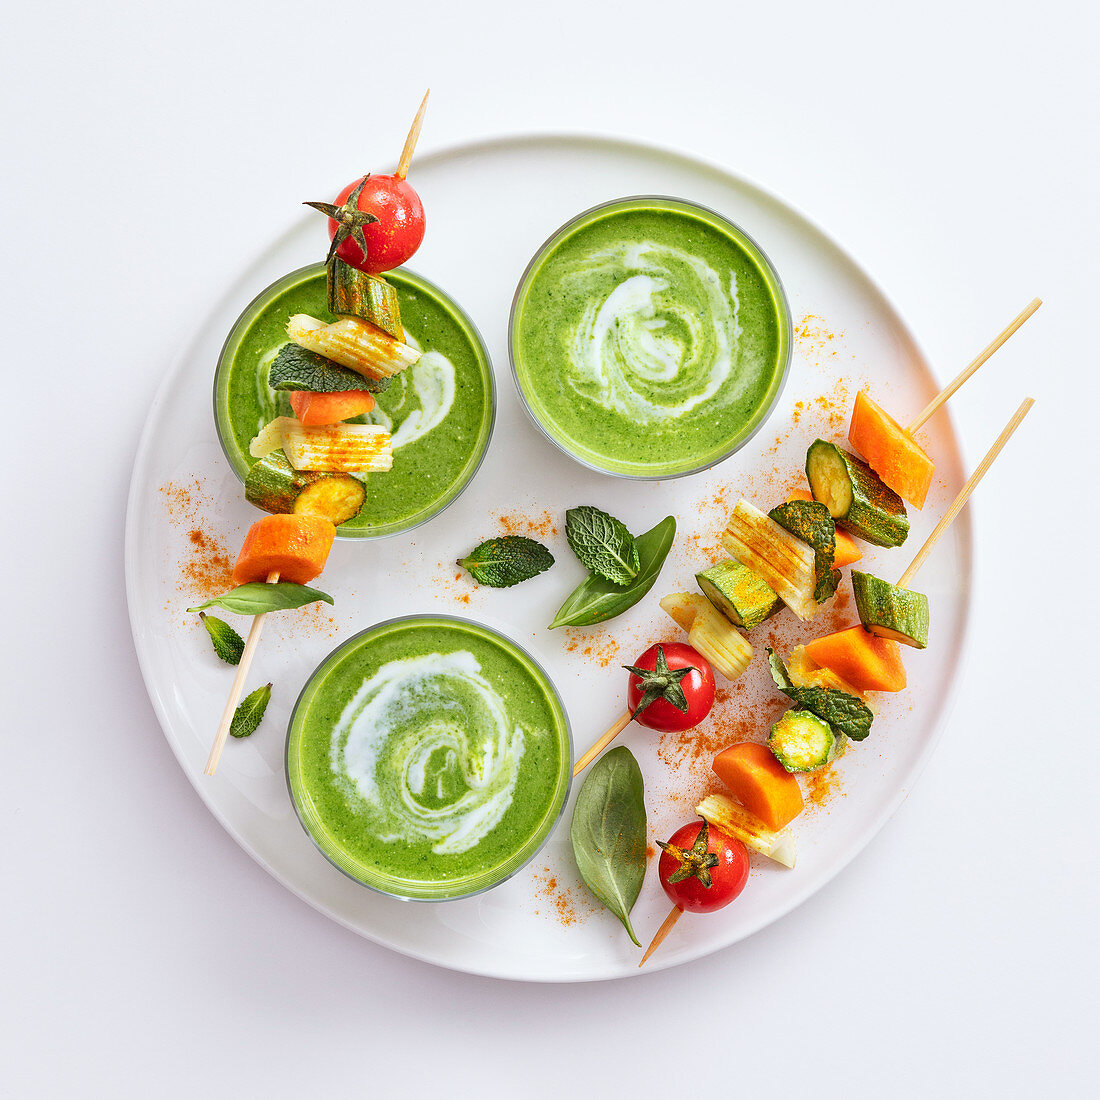 Spinach gazpacho with raw vegetables kebabs